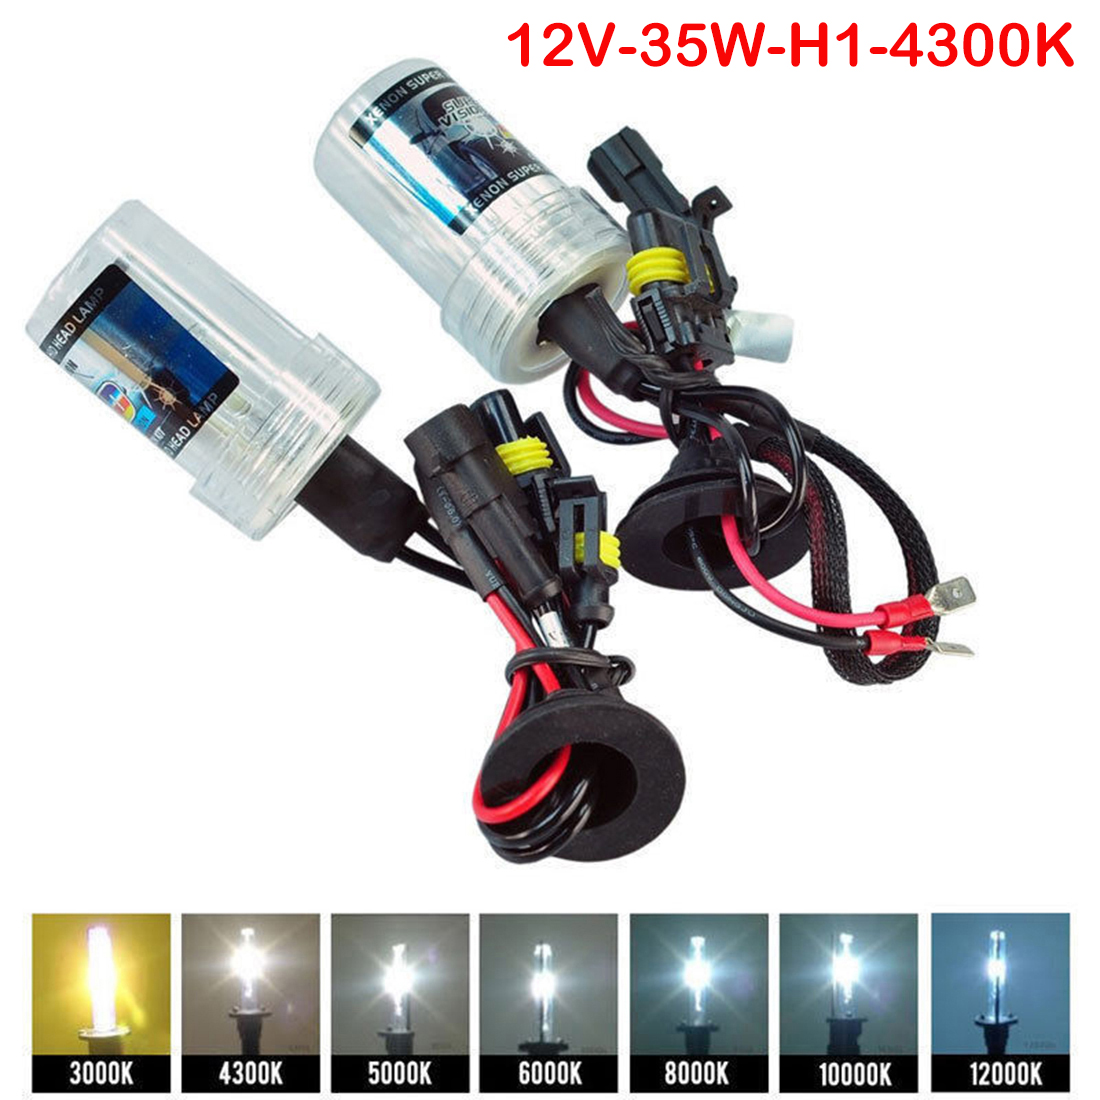 Tonewan 2pcs 35W Xenon HID Bulb Headlight Lamp Auto Car head light H1 H4 H11 4300K 5000K 6000K 8000K Car Auto Replacement borg warner e556 ignition coil